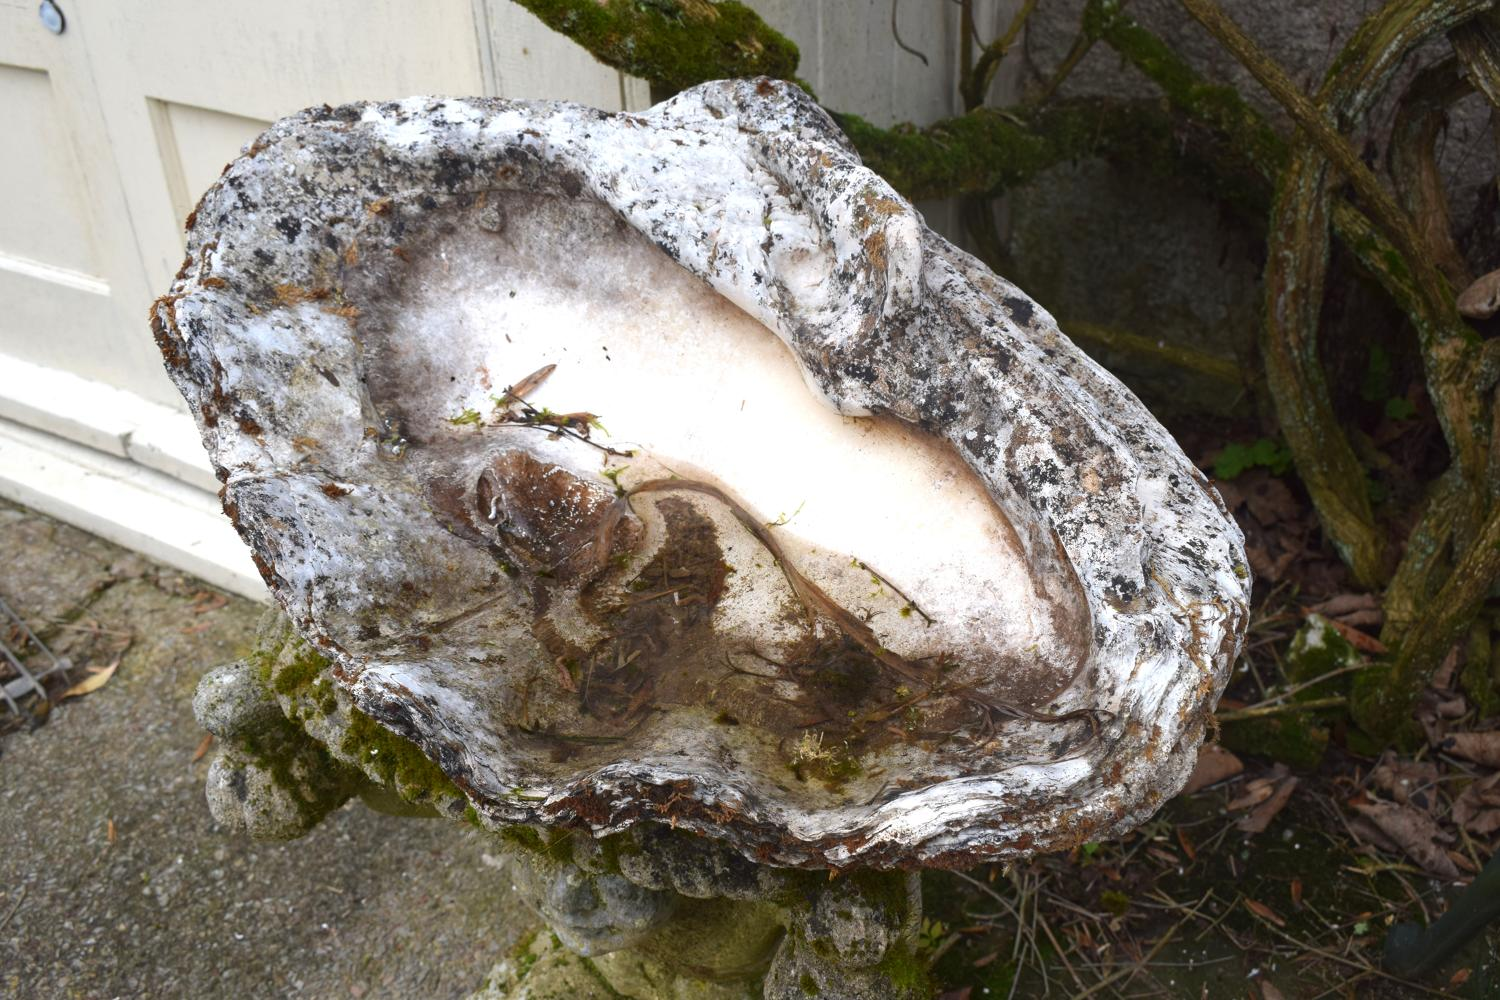 A calcified giant clamshell